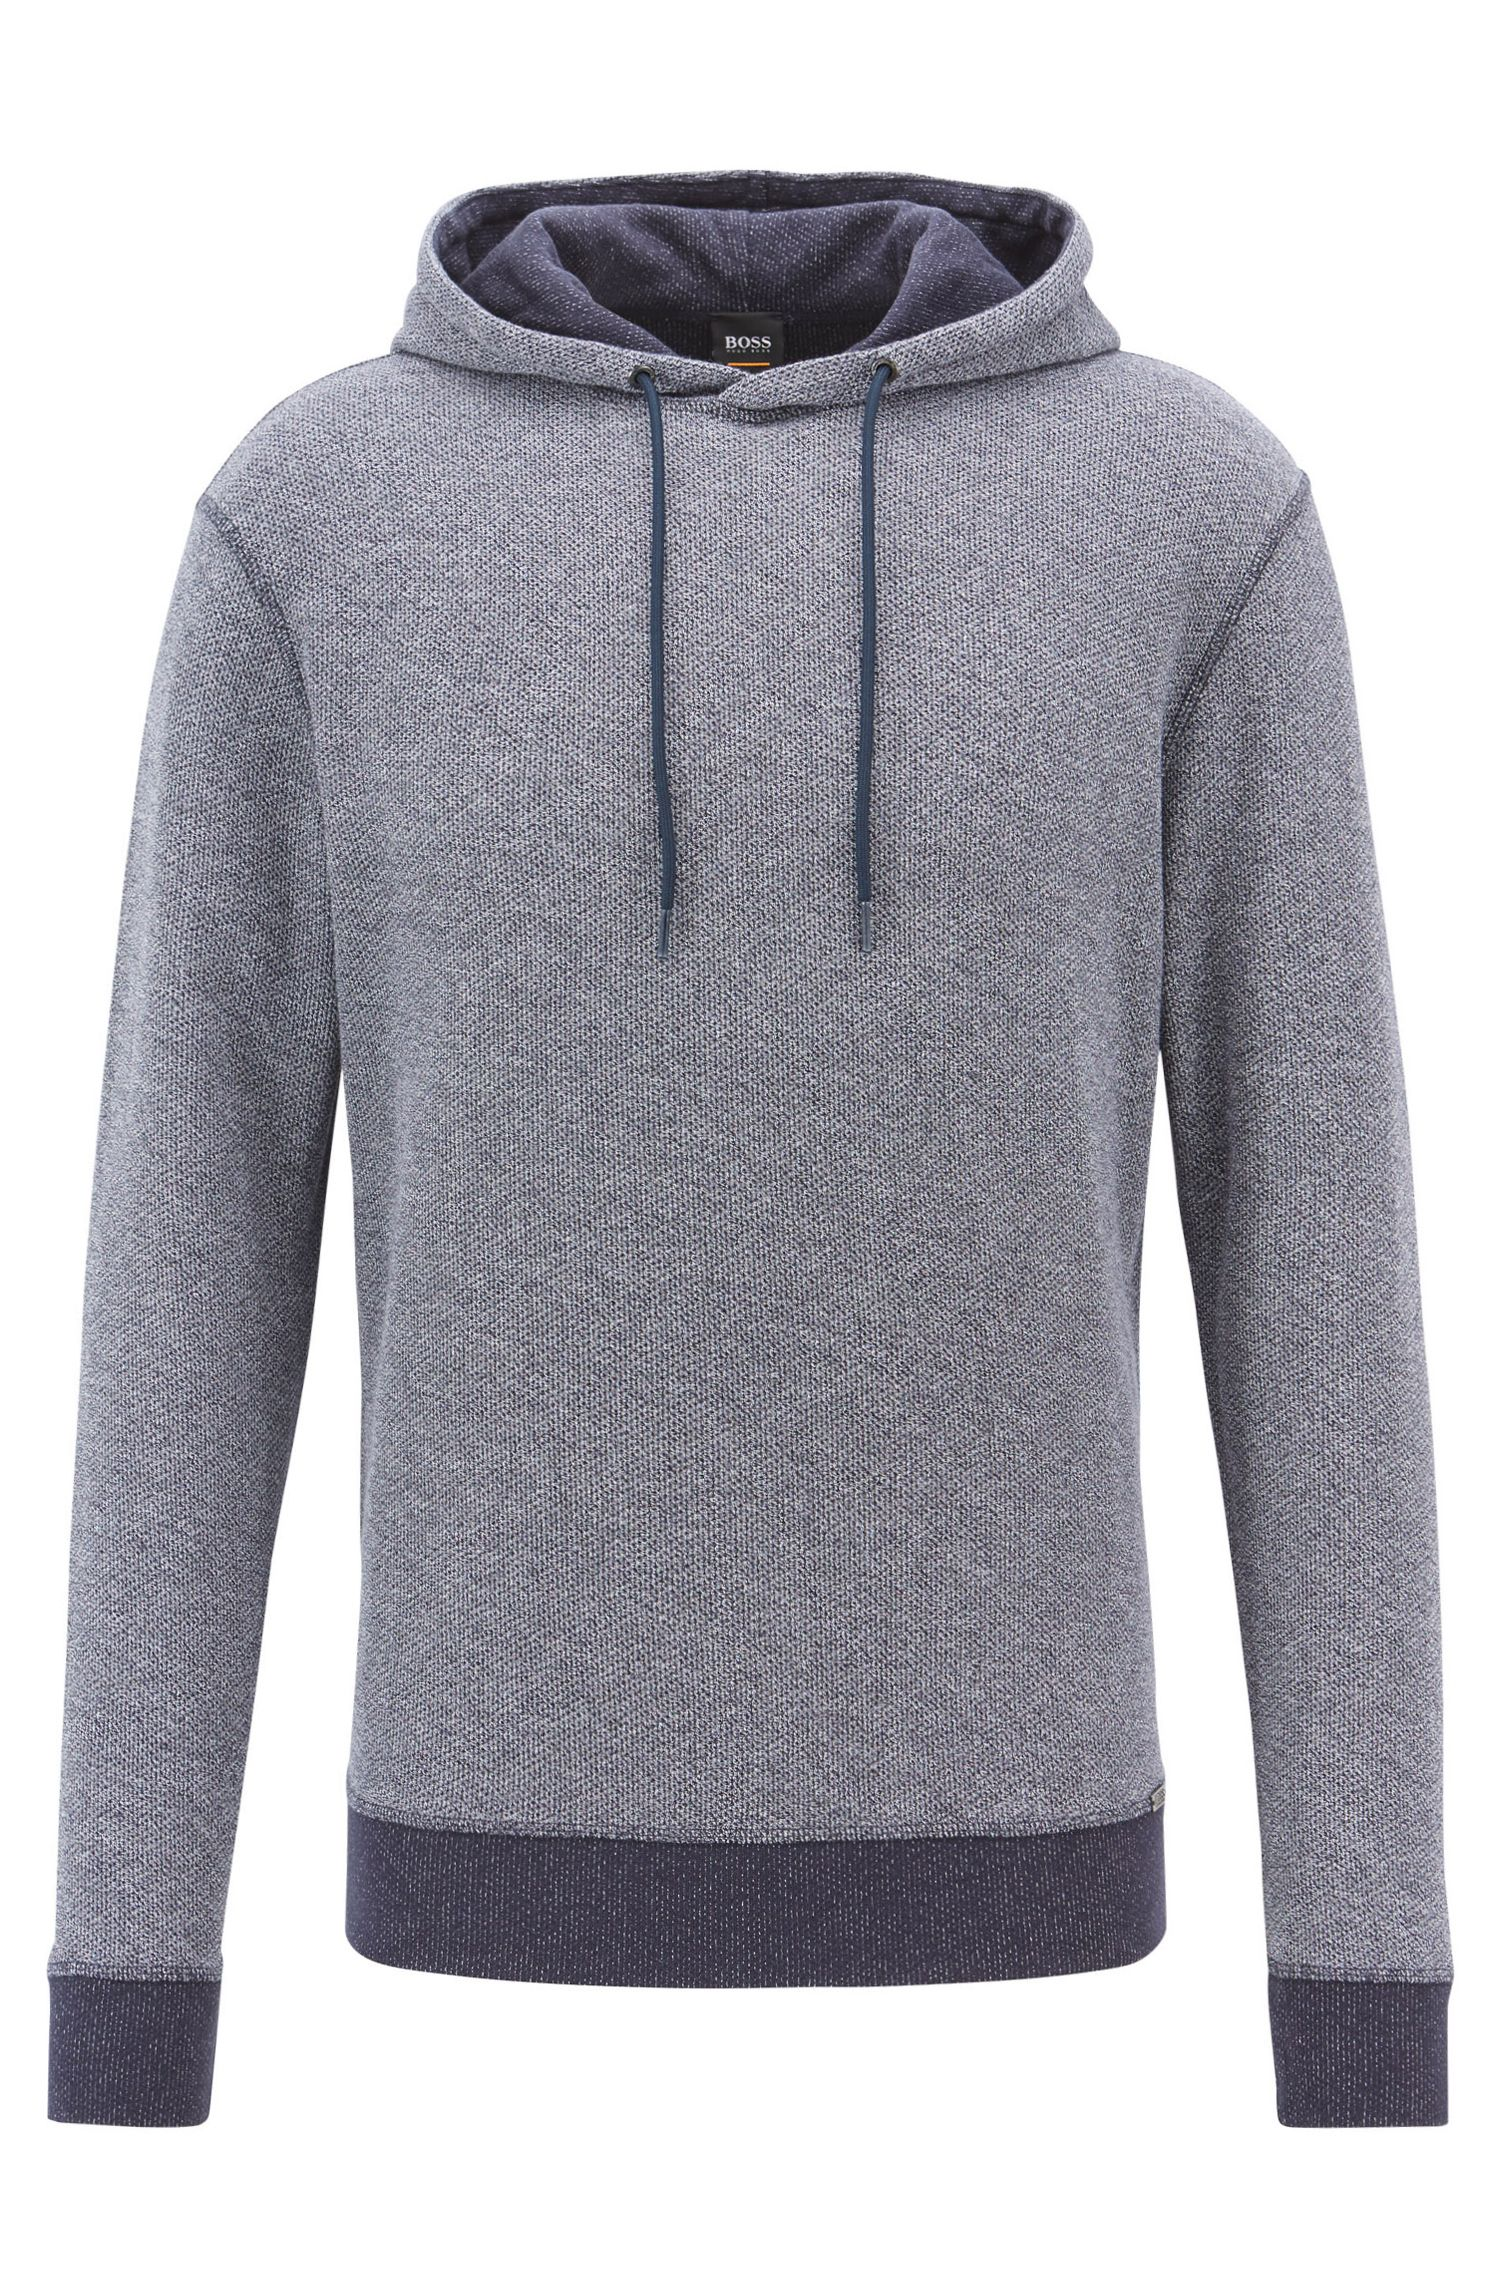 Reversible hooded sweatshirt in mesh-structured cotton, Dark Blue